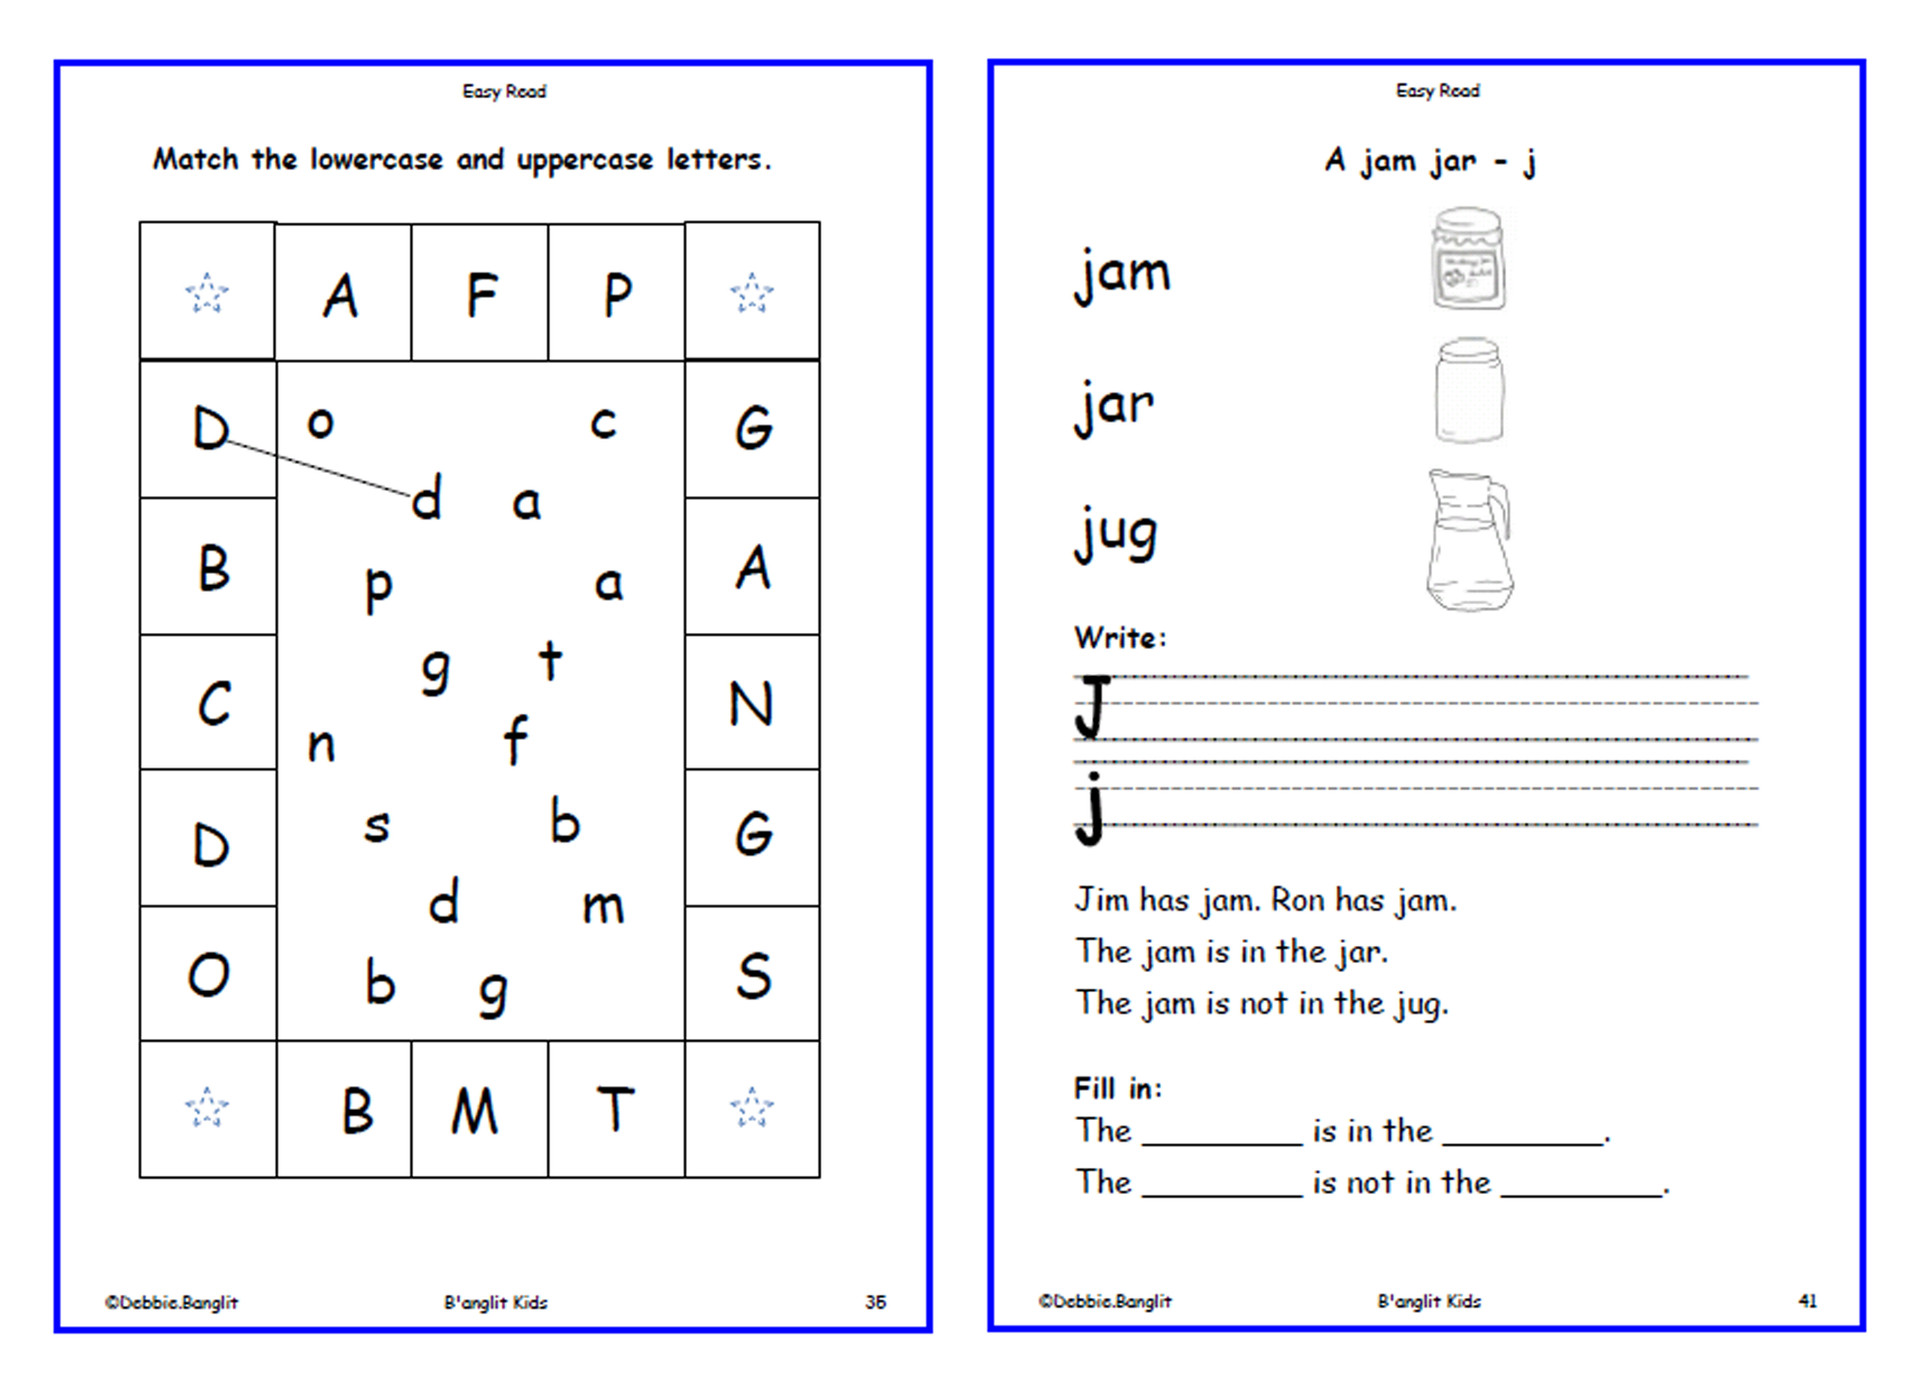 Easy Read - worksheets 36 & 41